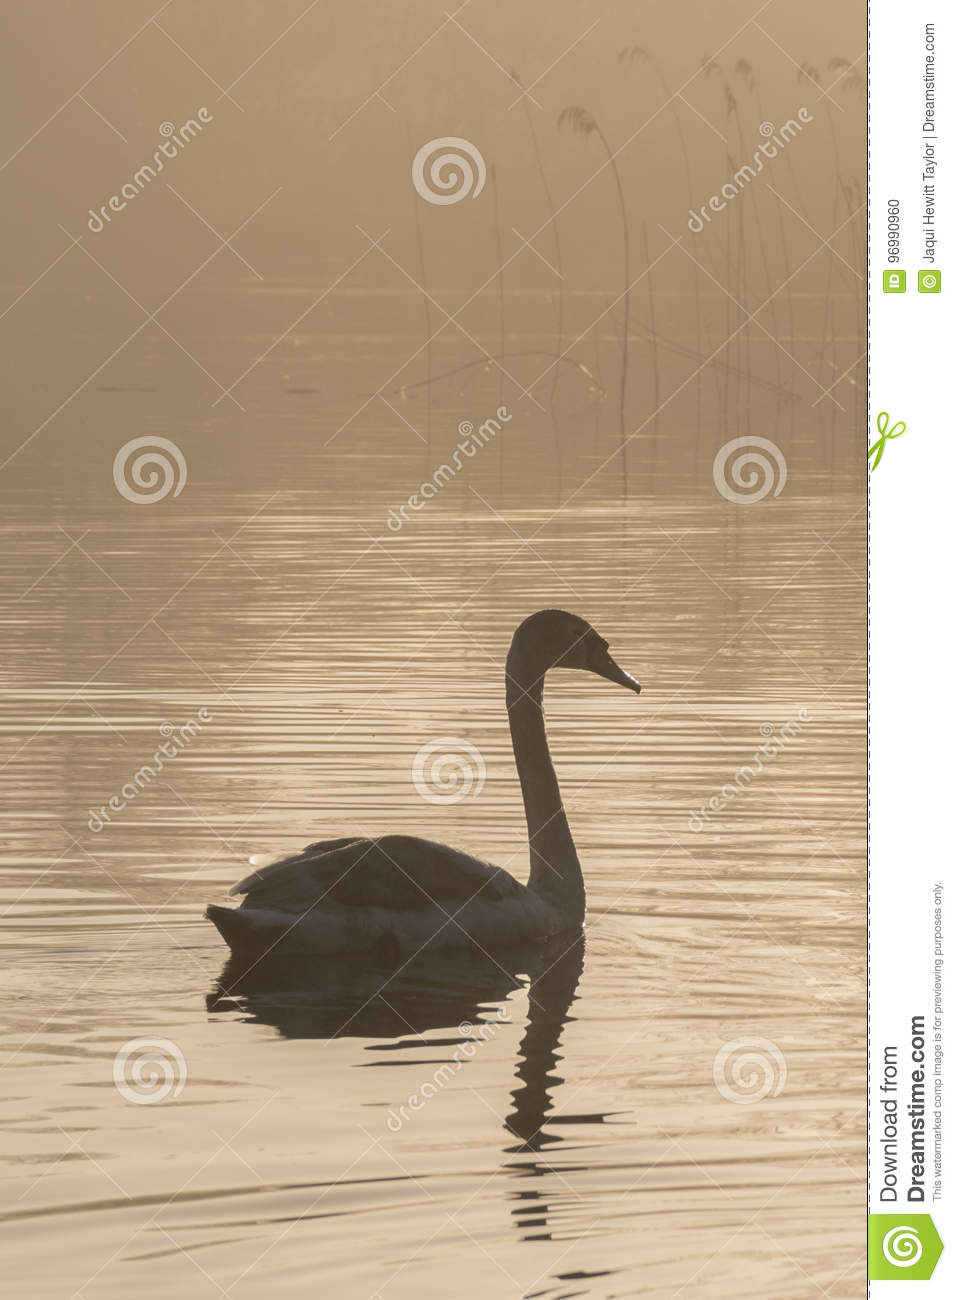 A cygnet in the mist